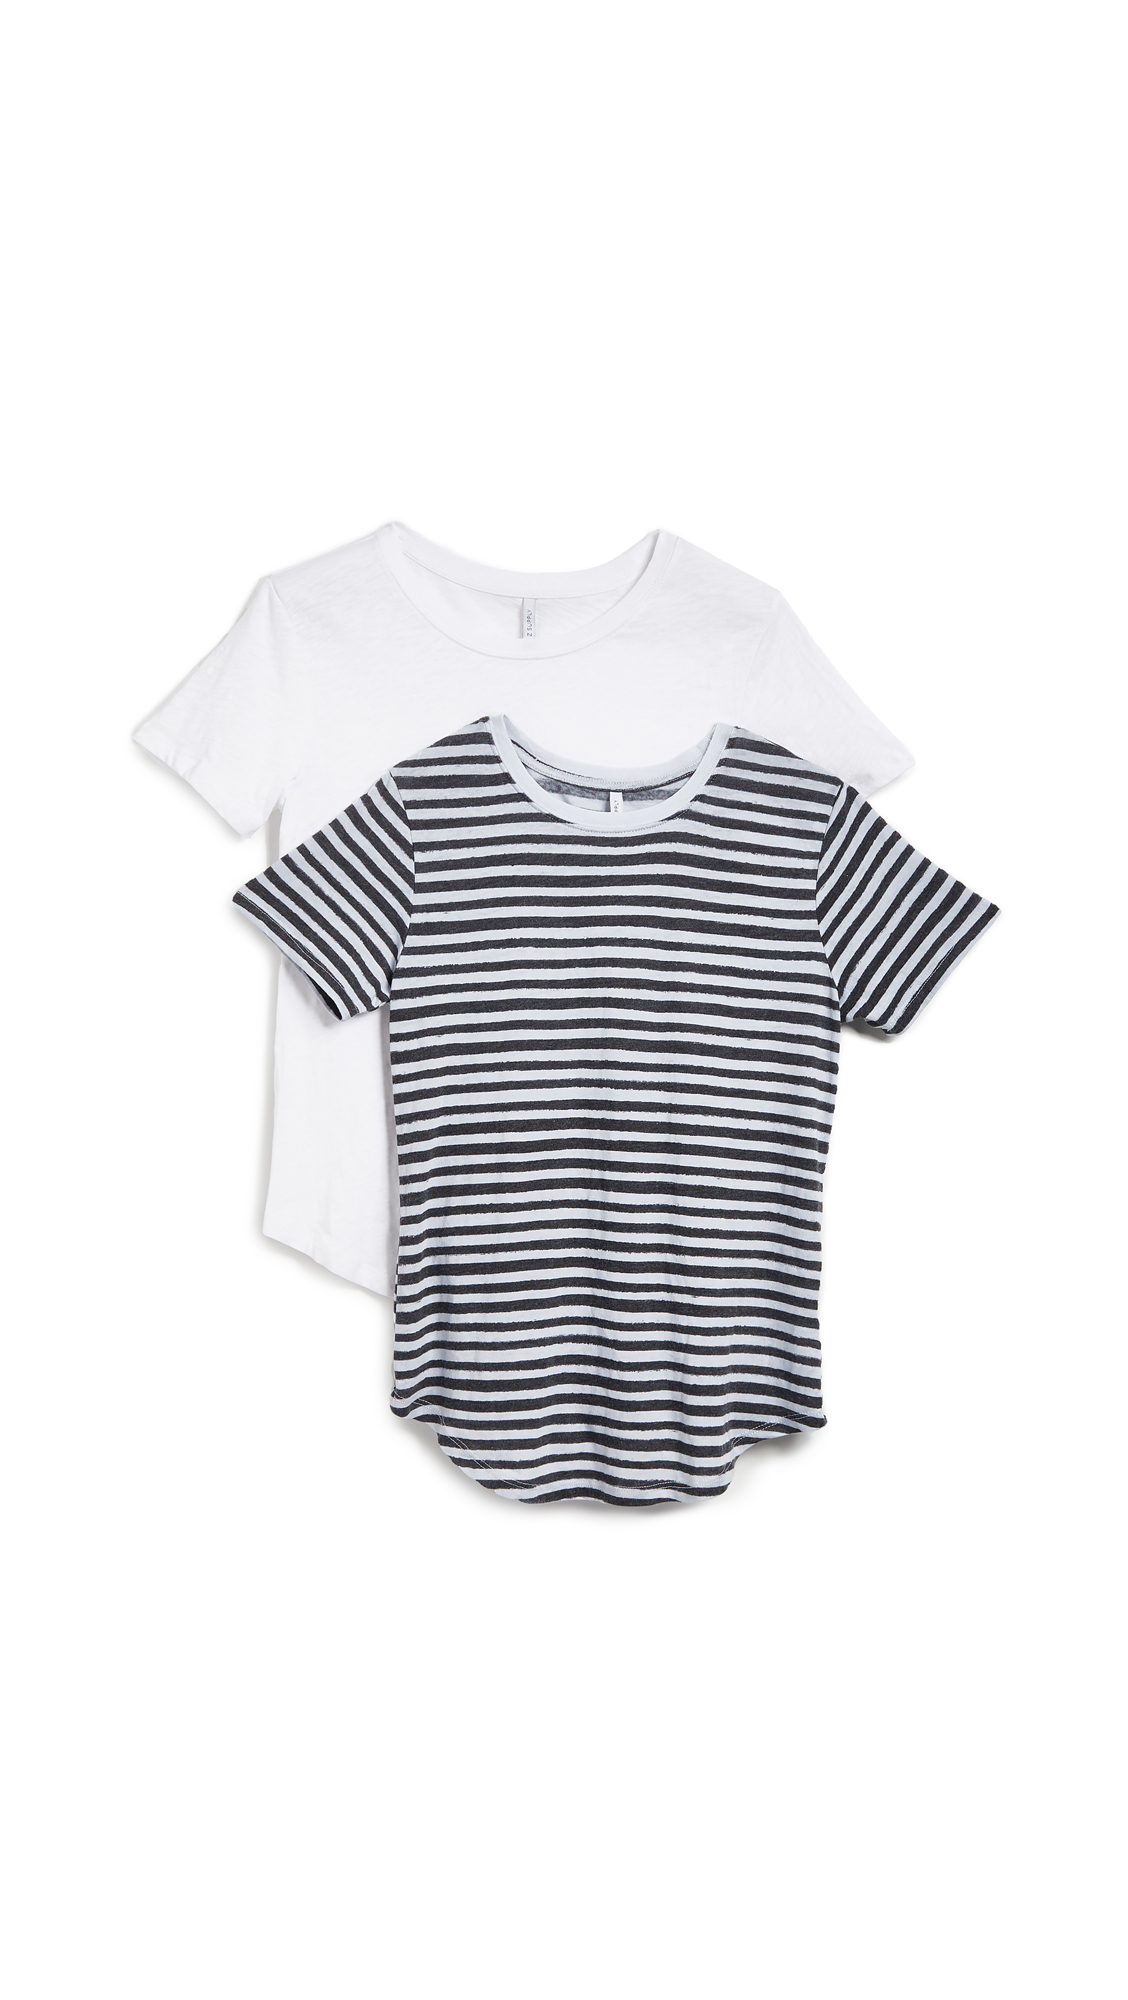 Z Supply The Ultimate Stripe Tee 2 Pack In Striped & White